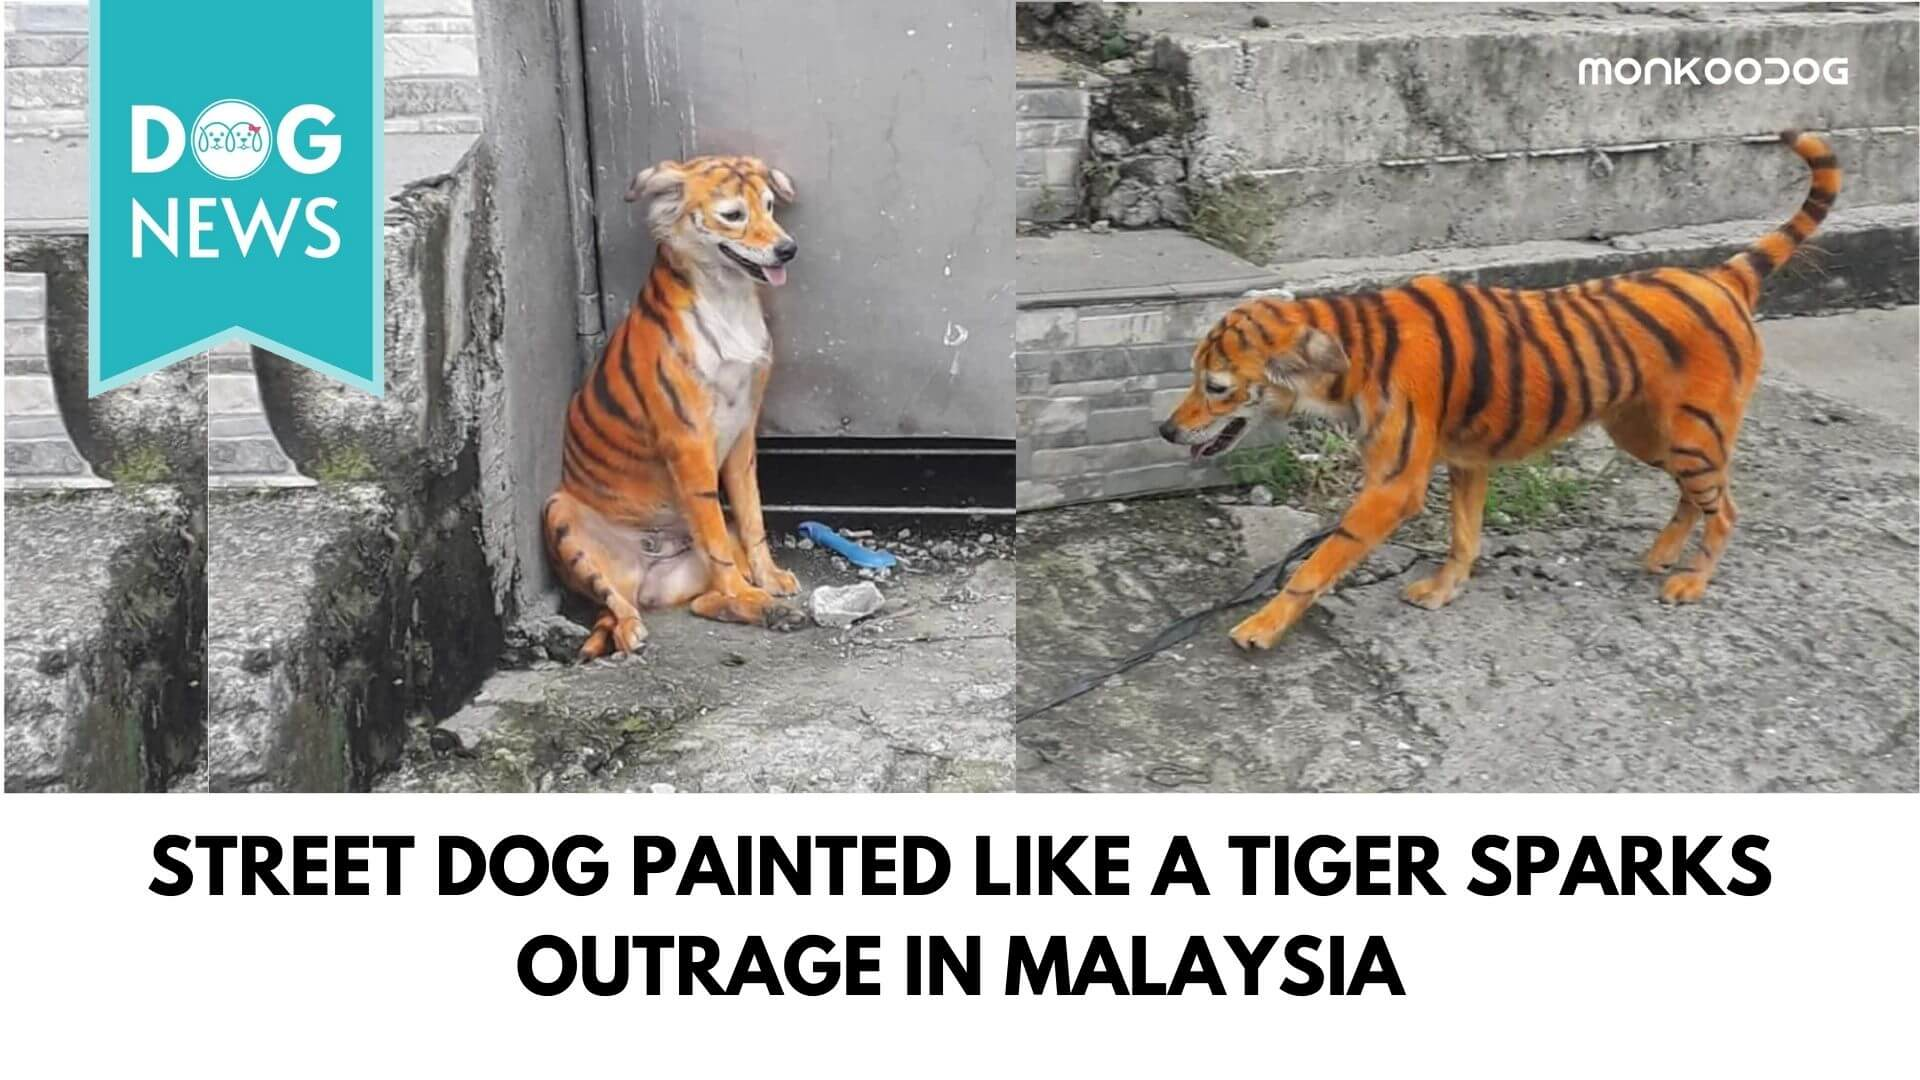 Street Dog Painted Like A Tiger Sparks Outrage In Malaysia